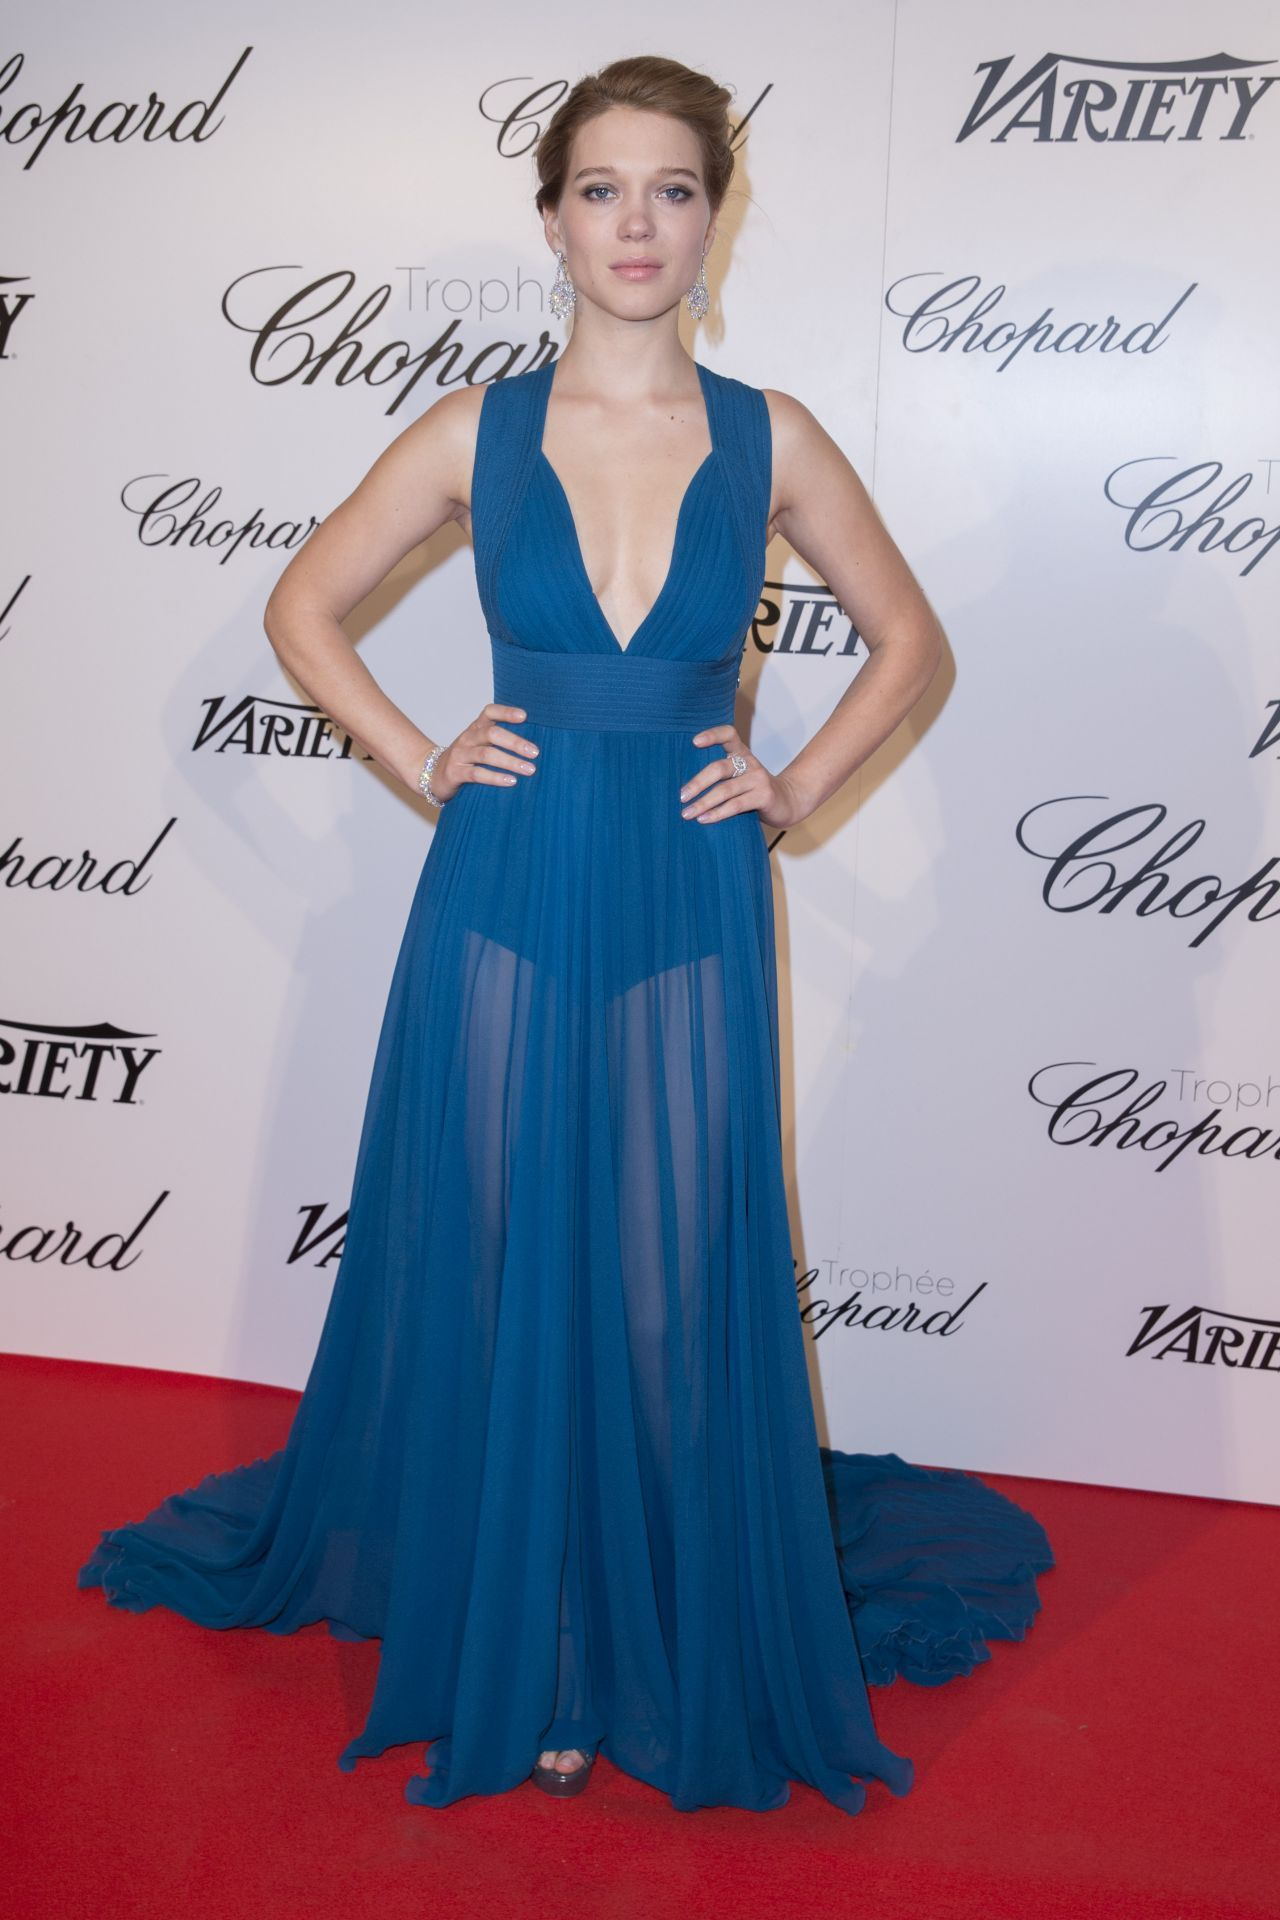 73f4e9c6e Léa Seydoux in ELIE SAAB Spring 2015 – Chopard Trophy Party in Cannes